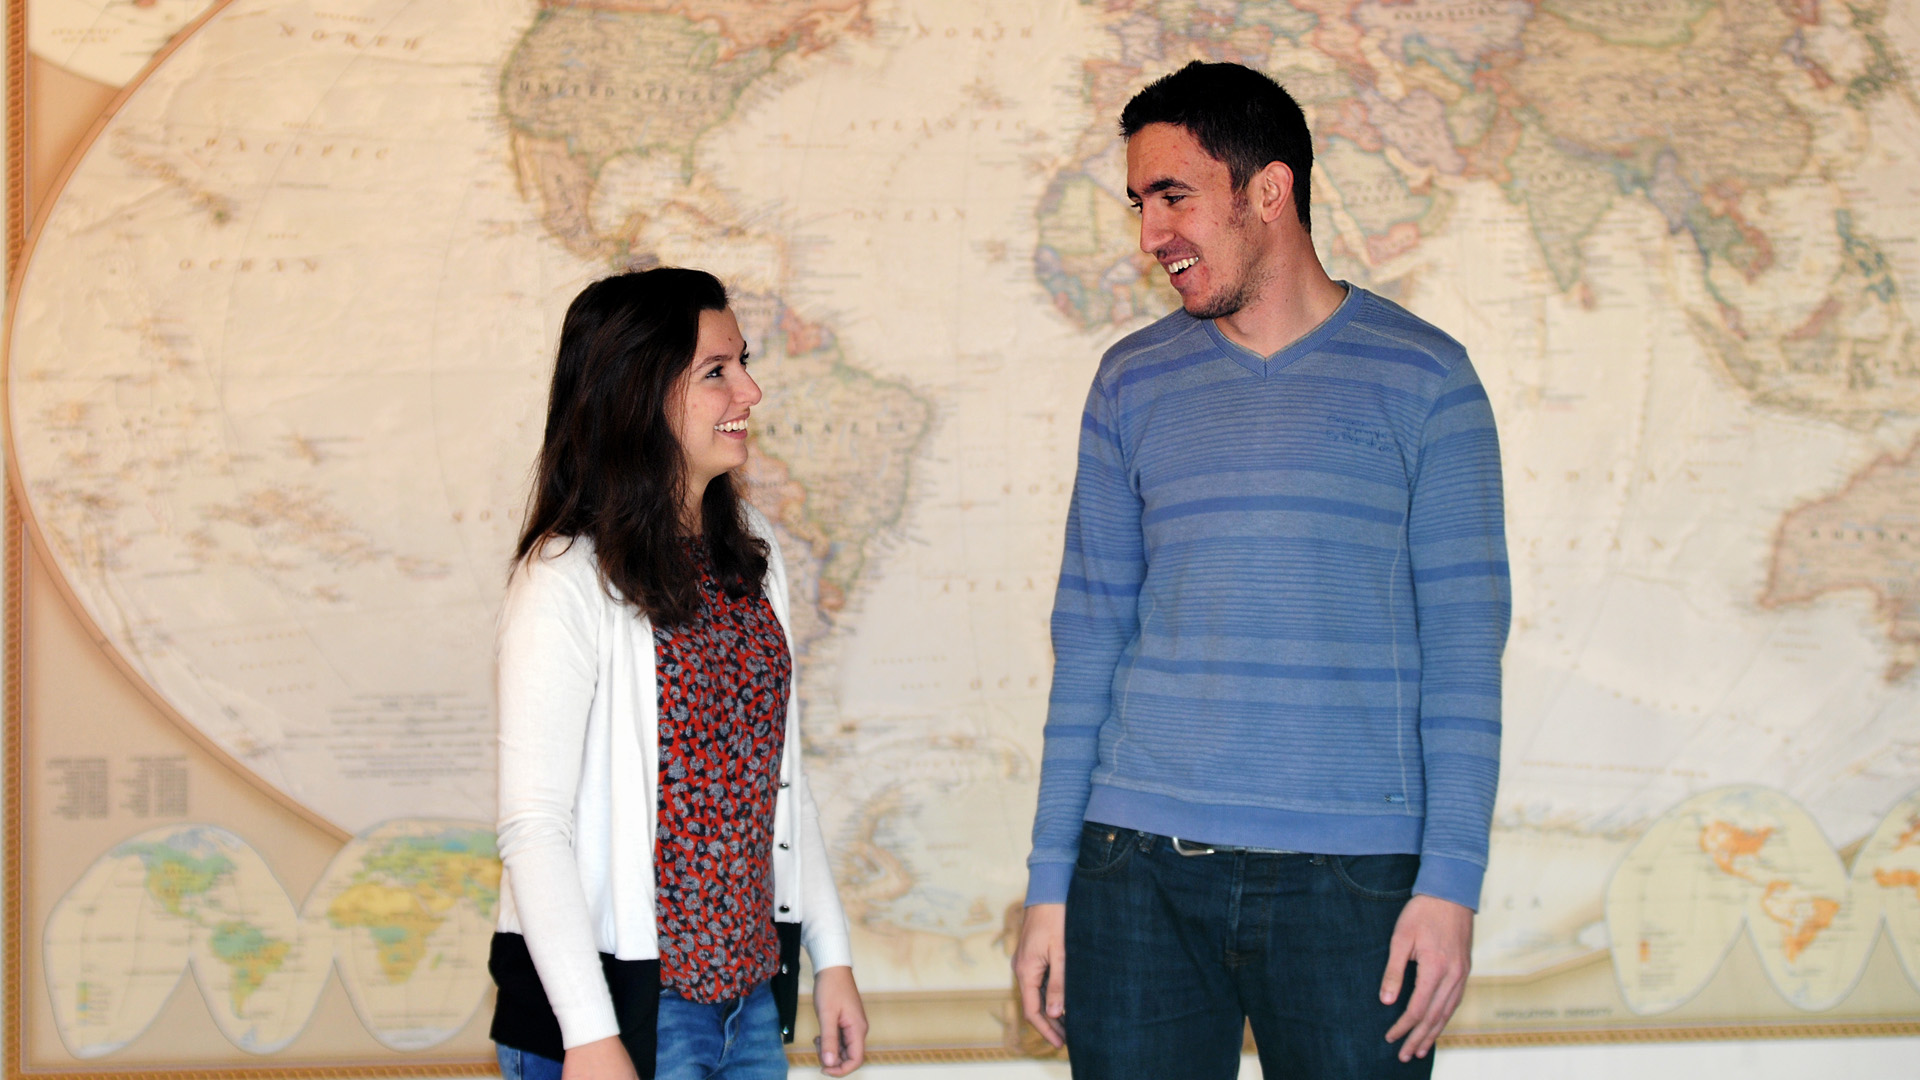 Rania and Moe stand in front of a world map and smile at each other